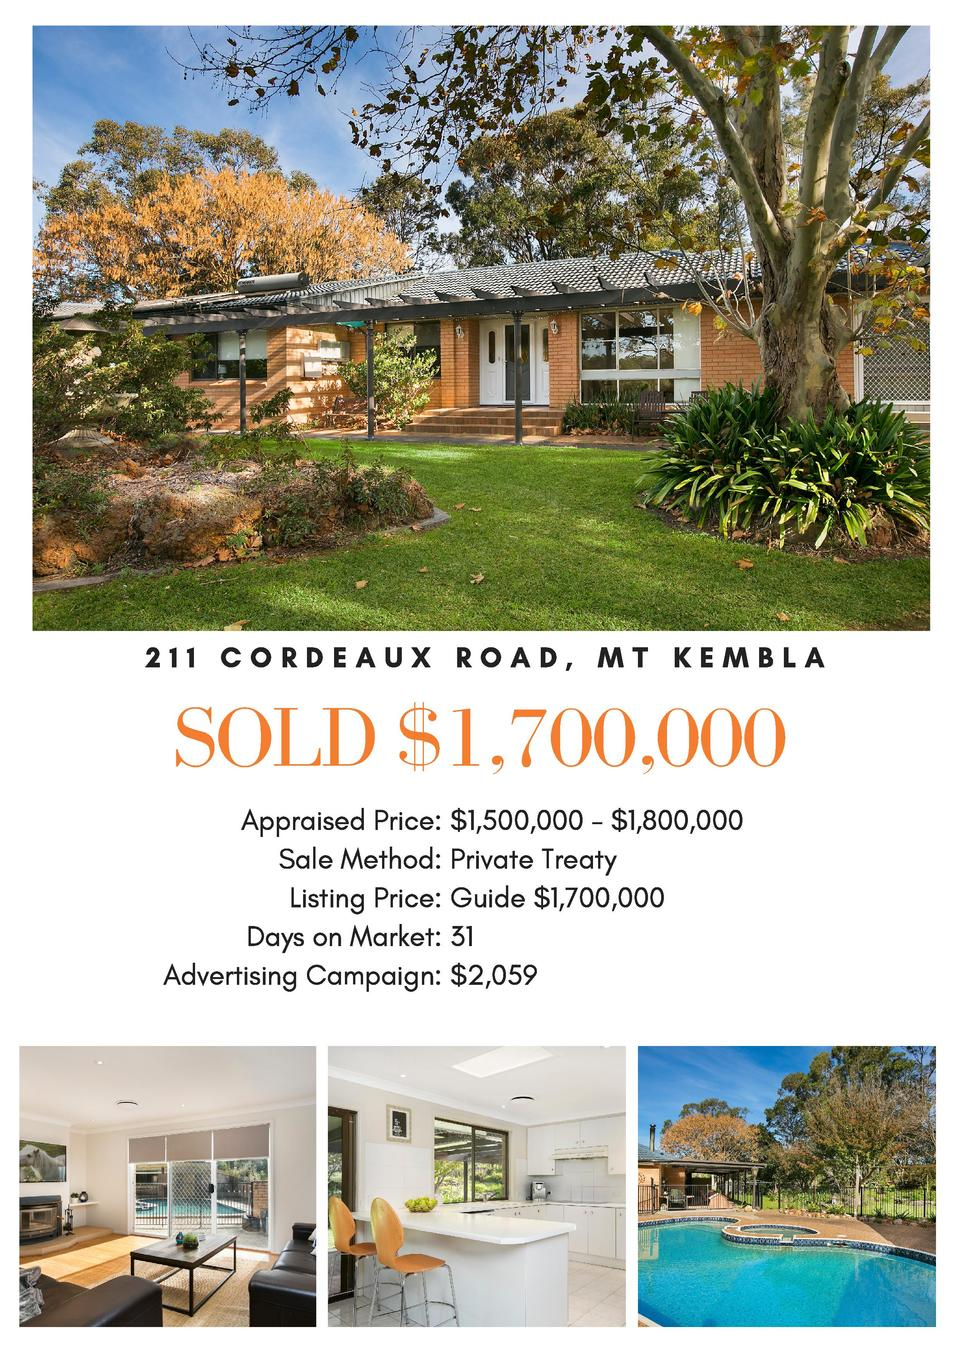 211  CORDEAUX ROAD, MT KEMBLA  SOLD  1,700,000 Appraised Price   1,500,000 -  1,800,000 Sale Method  Private Treaty Listin...